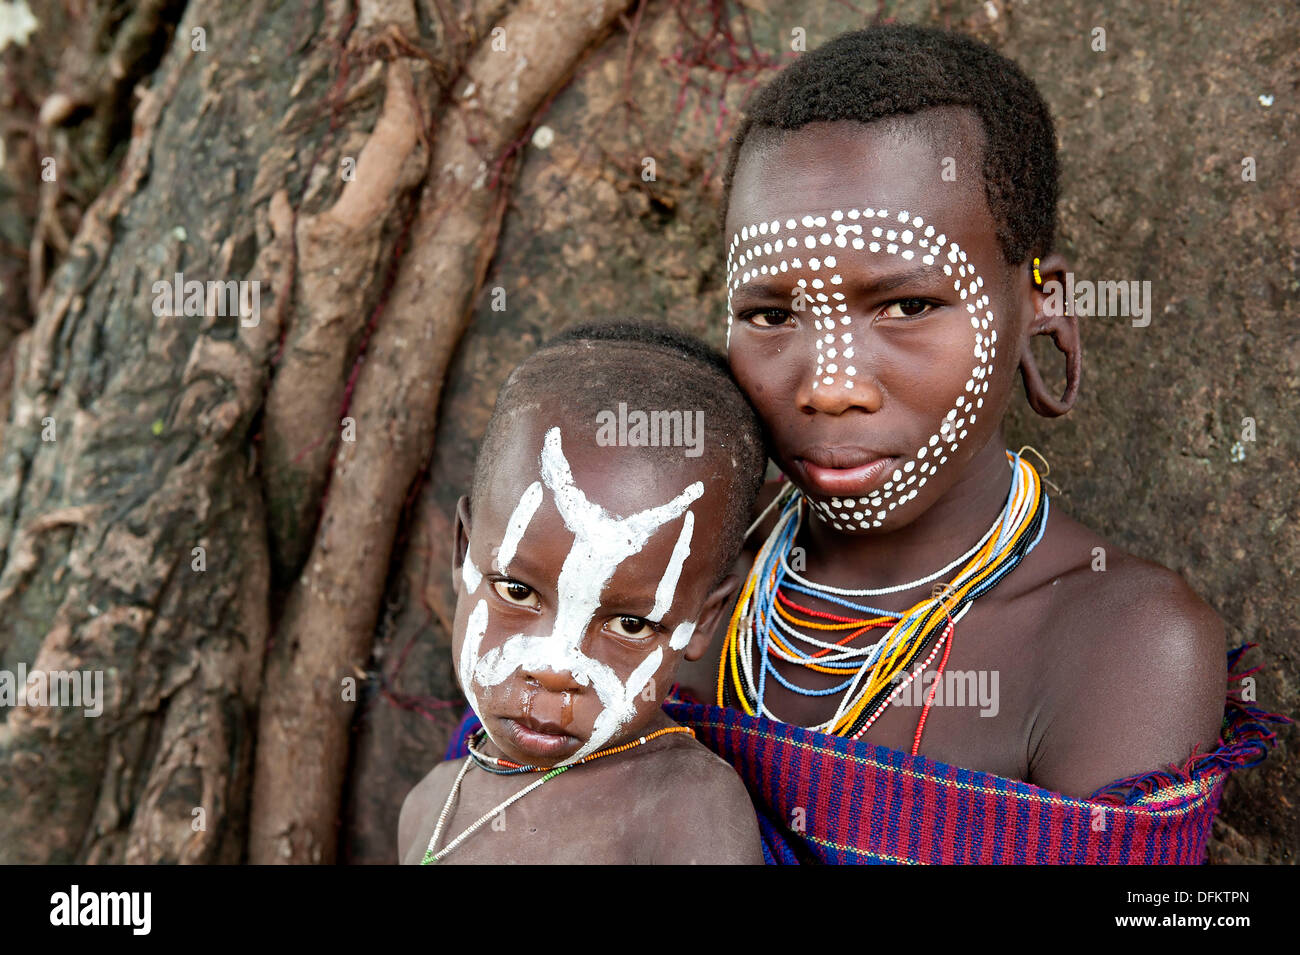 Painted faces of a young Surma Women and her child in front of a tree, Kibish, Omo River Valley, Ethiopia - Stock Image